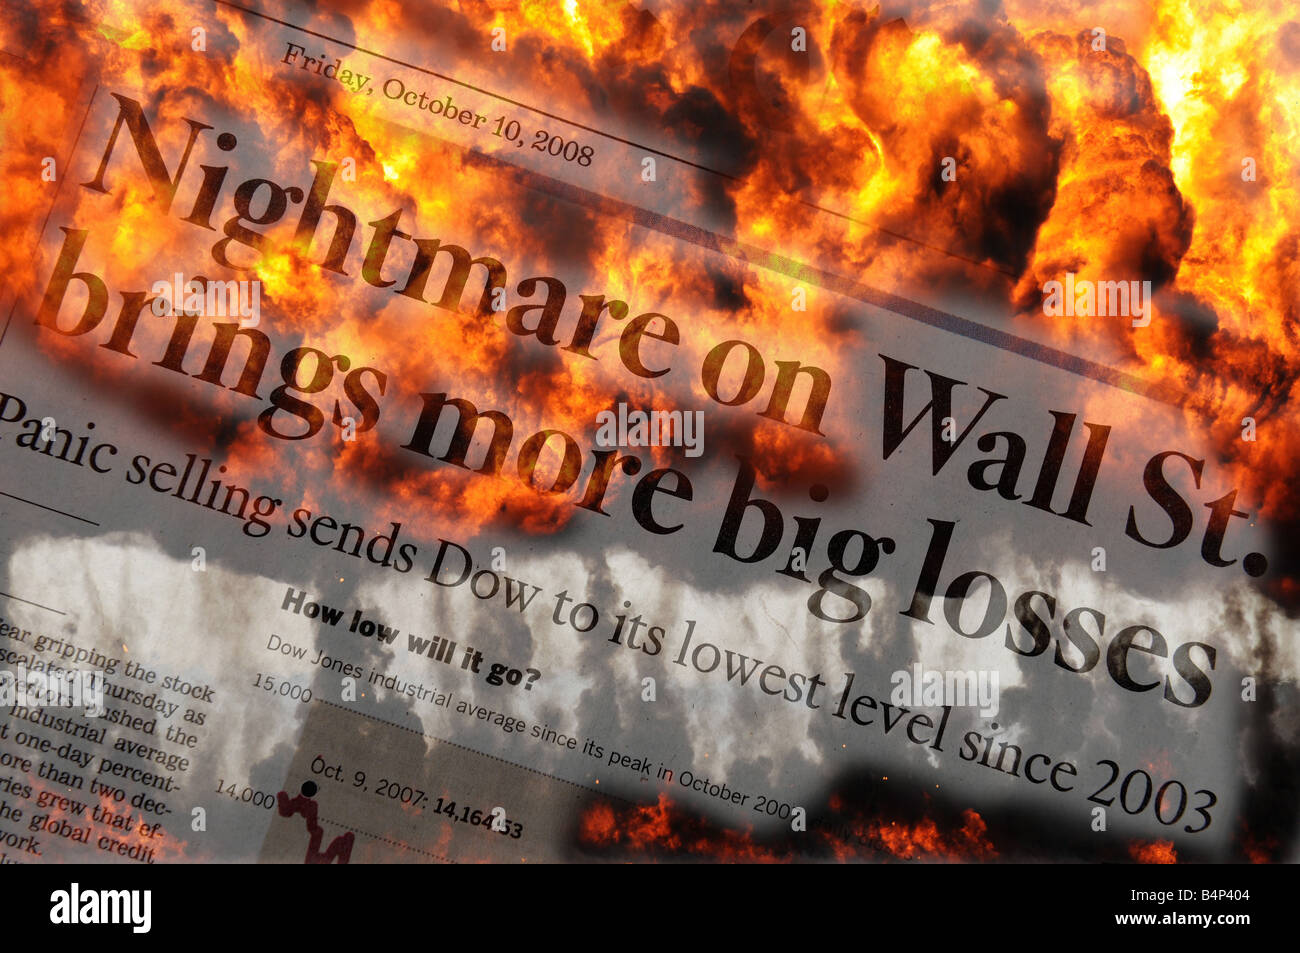 Nightmare on Wall Street - Stock Image